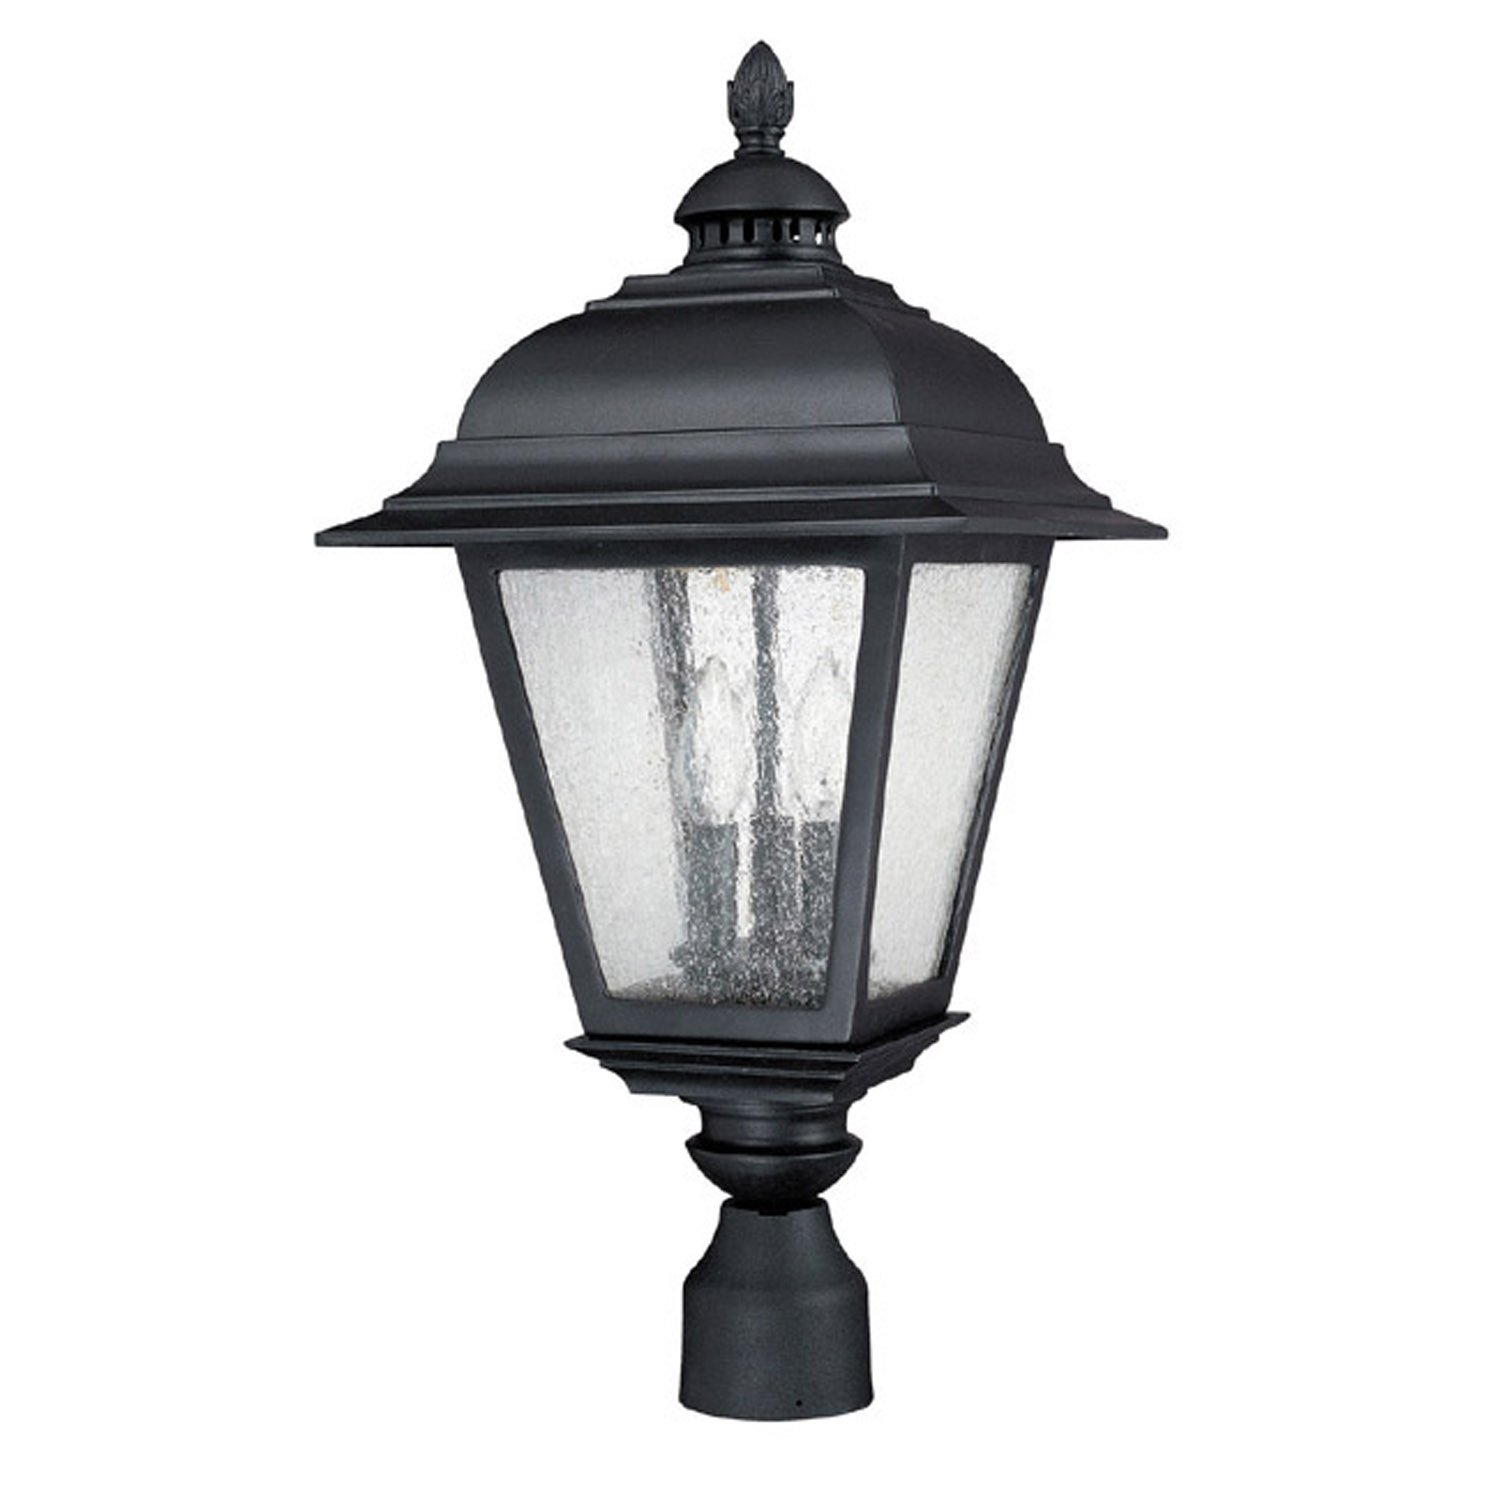 Capital Lighting 9967BK Outdoor Post Lantern with Seeded Glass Shades, Black Finish